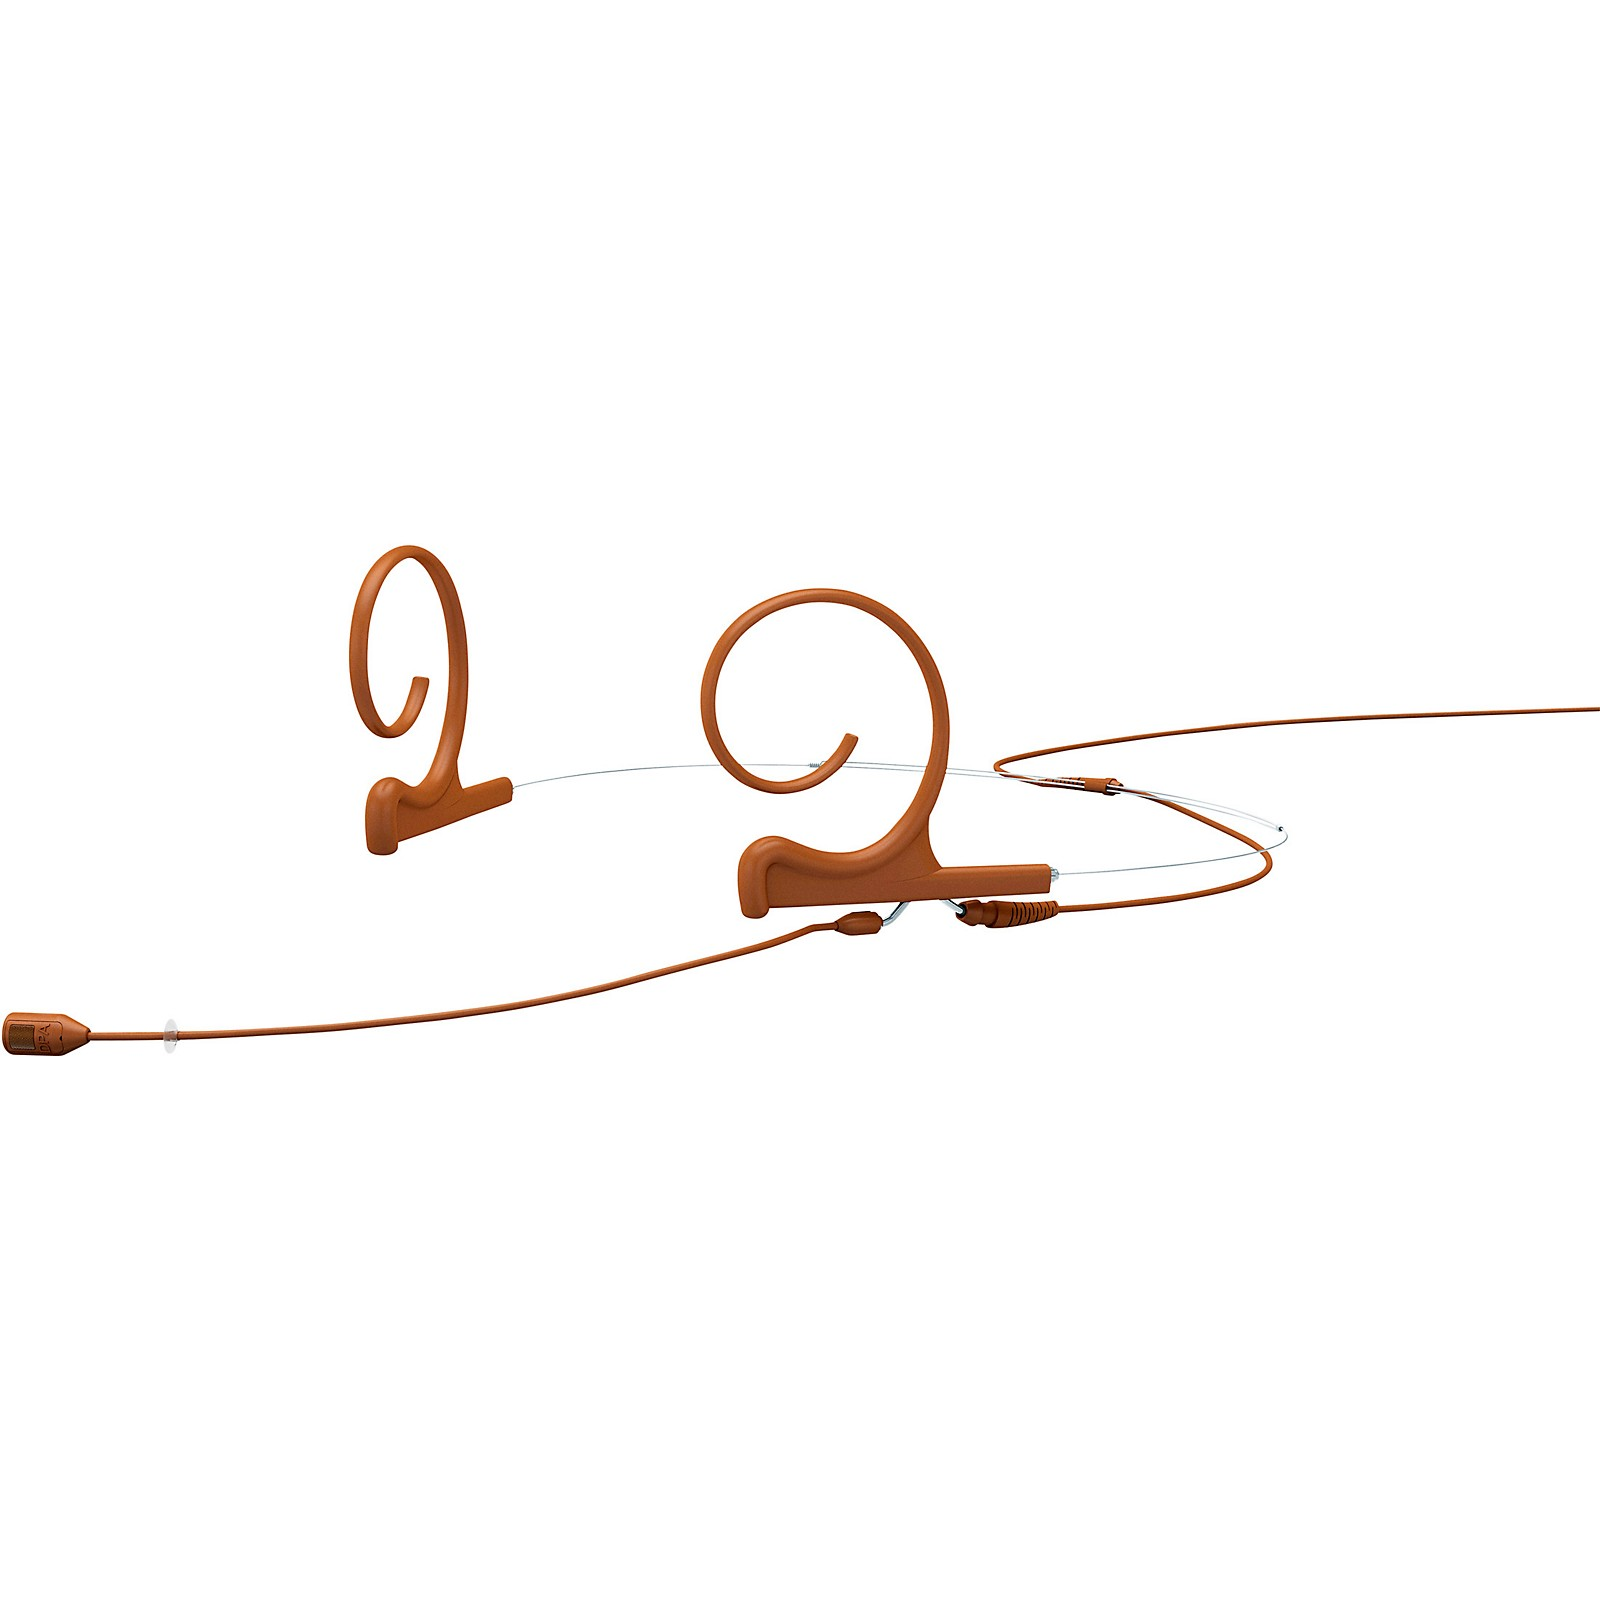 DPA Microphones d:fine FID88 Directional Headset Microphone—Dual Ear, 120mm Boom, Microdot Connector, Brown